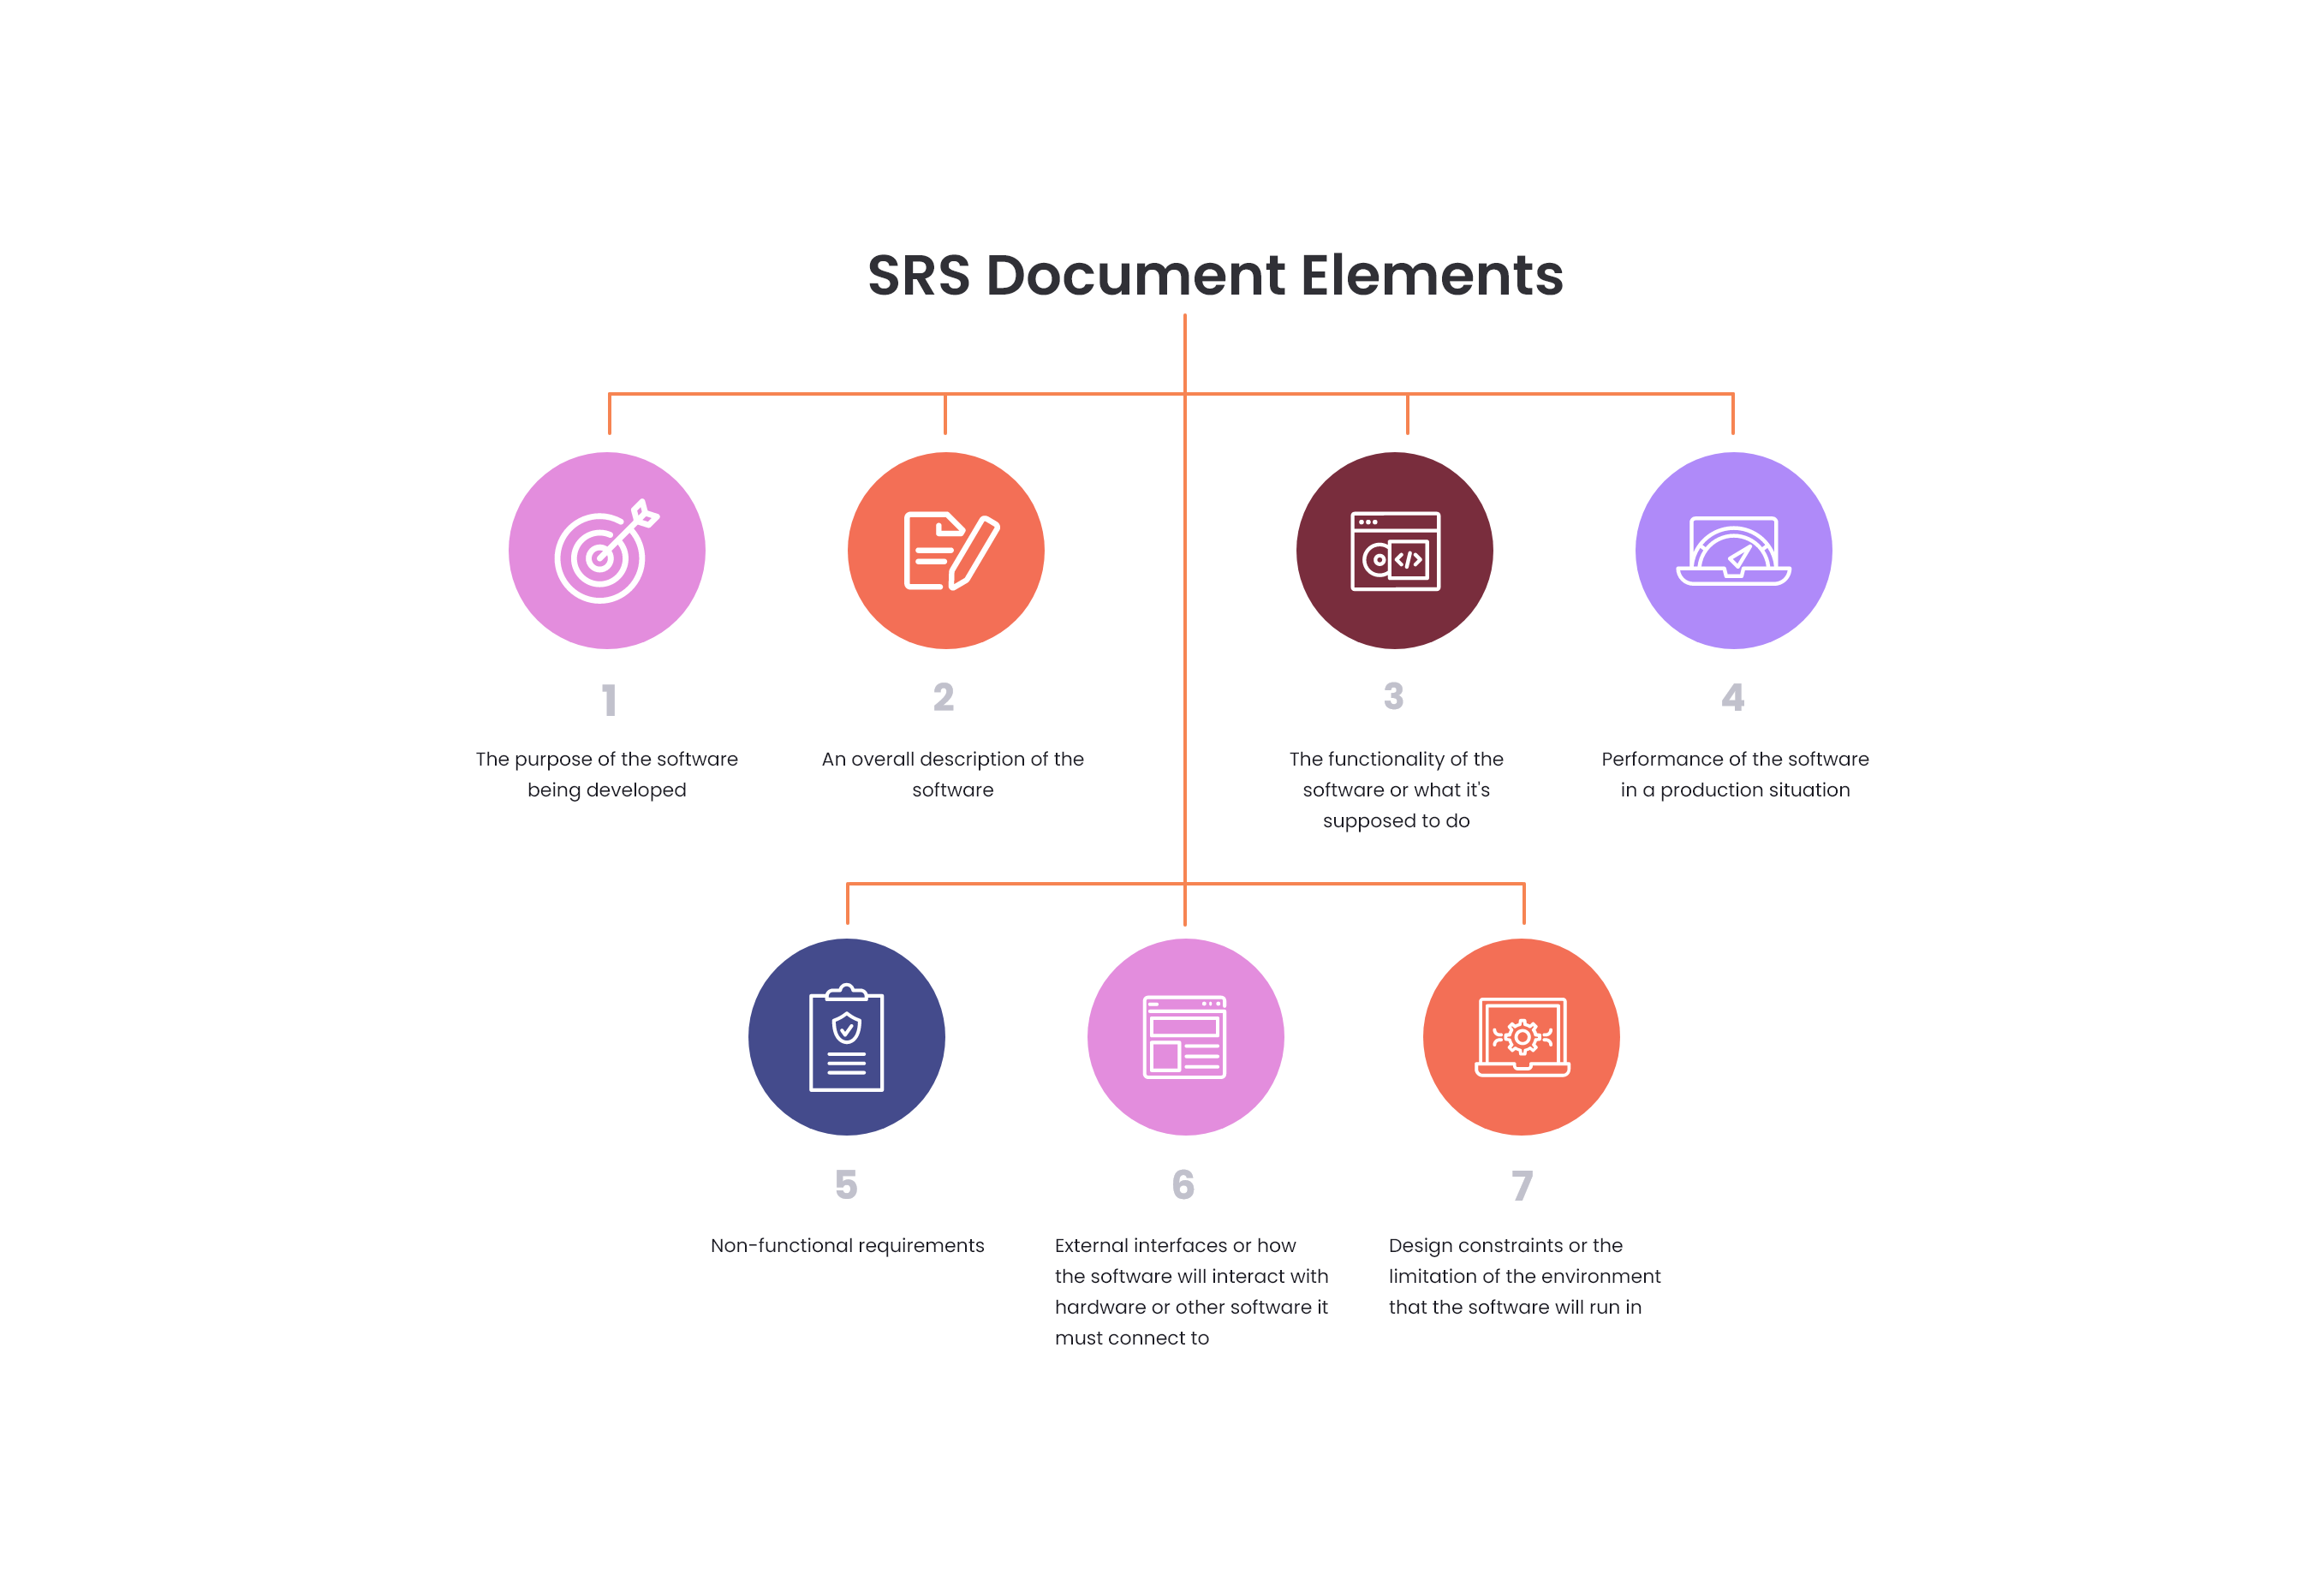 Elements of SRS Document